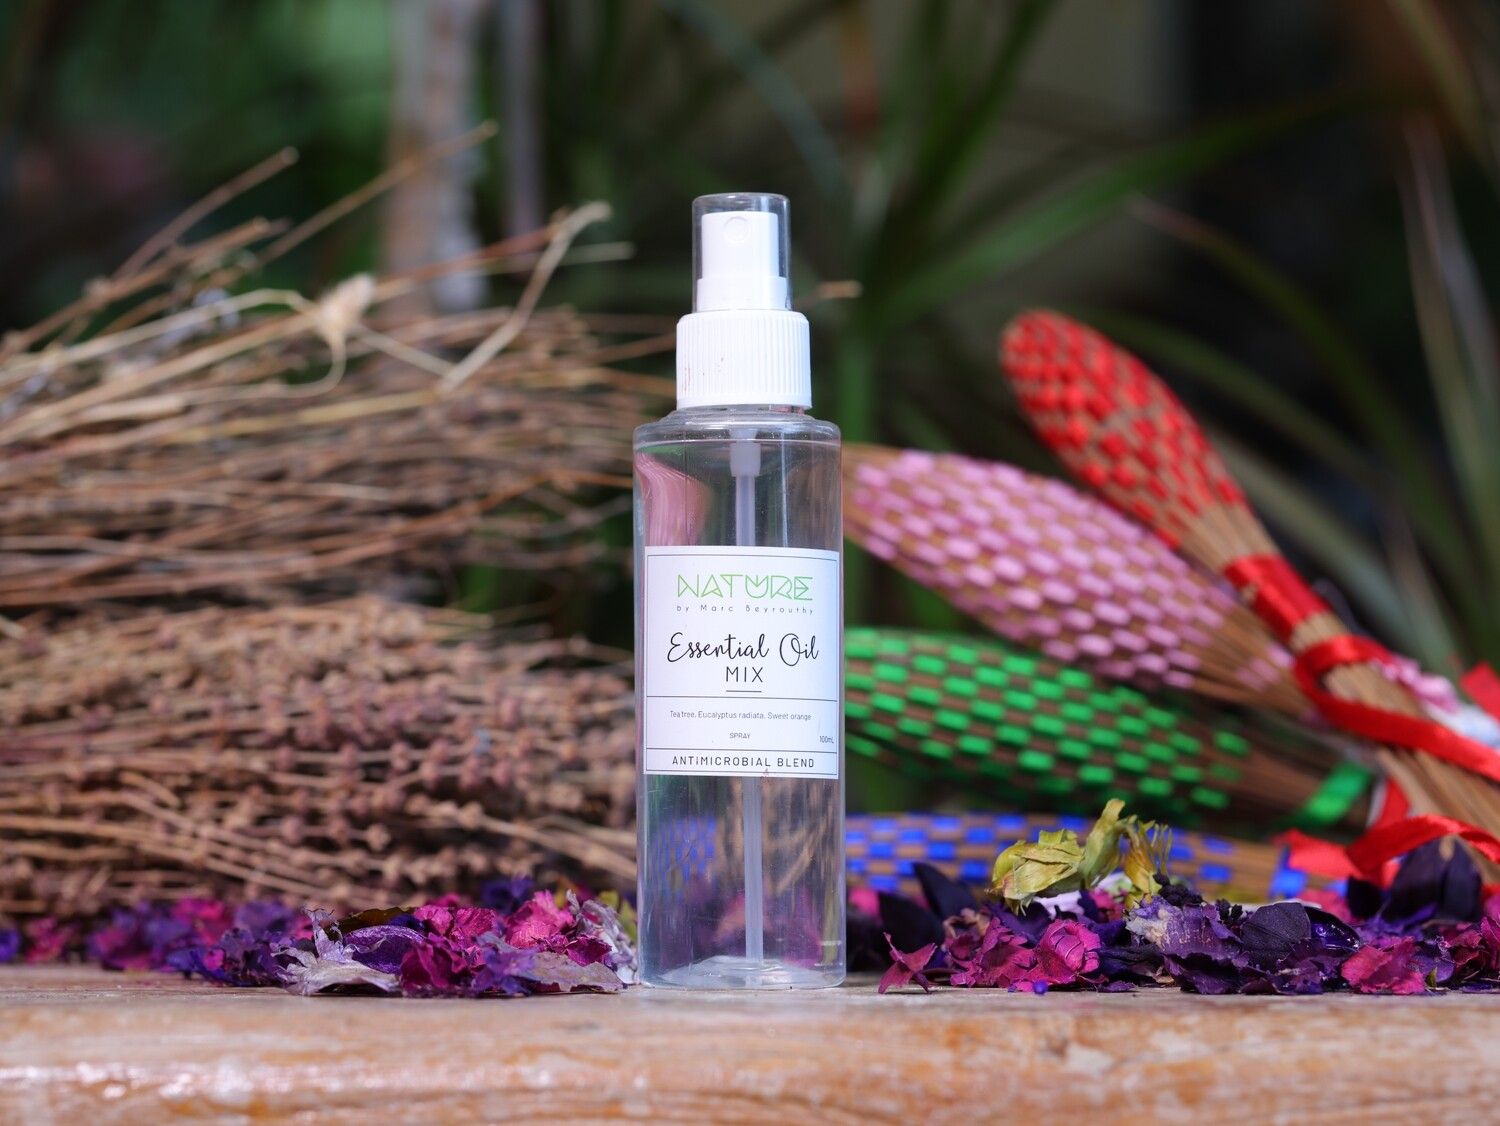 Essential Oil Anti-microbial Blend (Spray) - Nature by Marc Beyrouthy